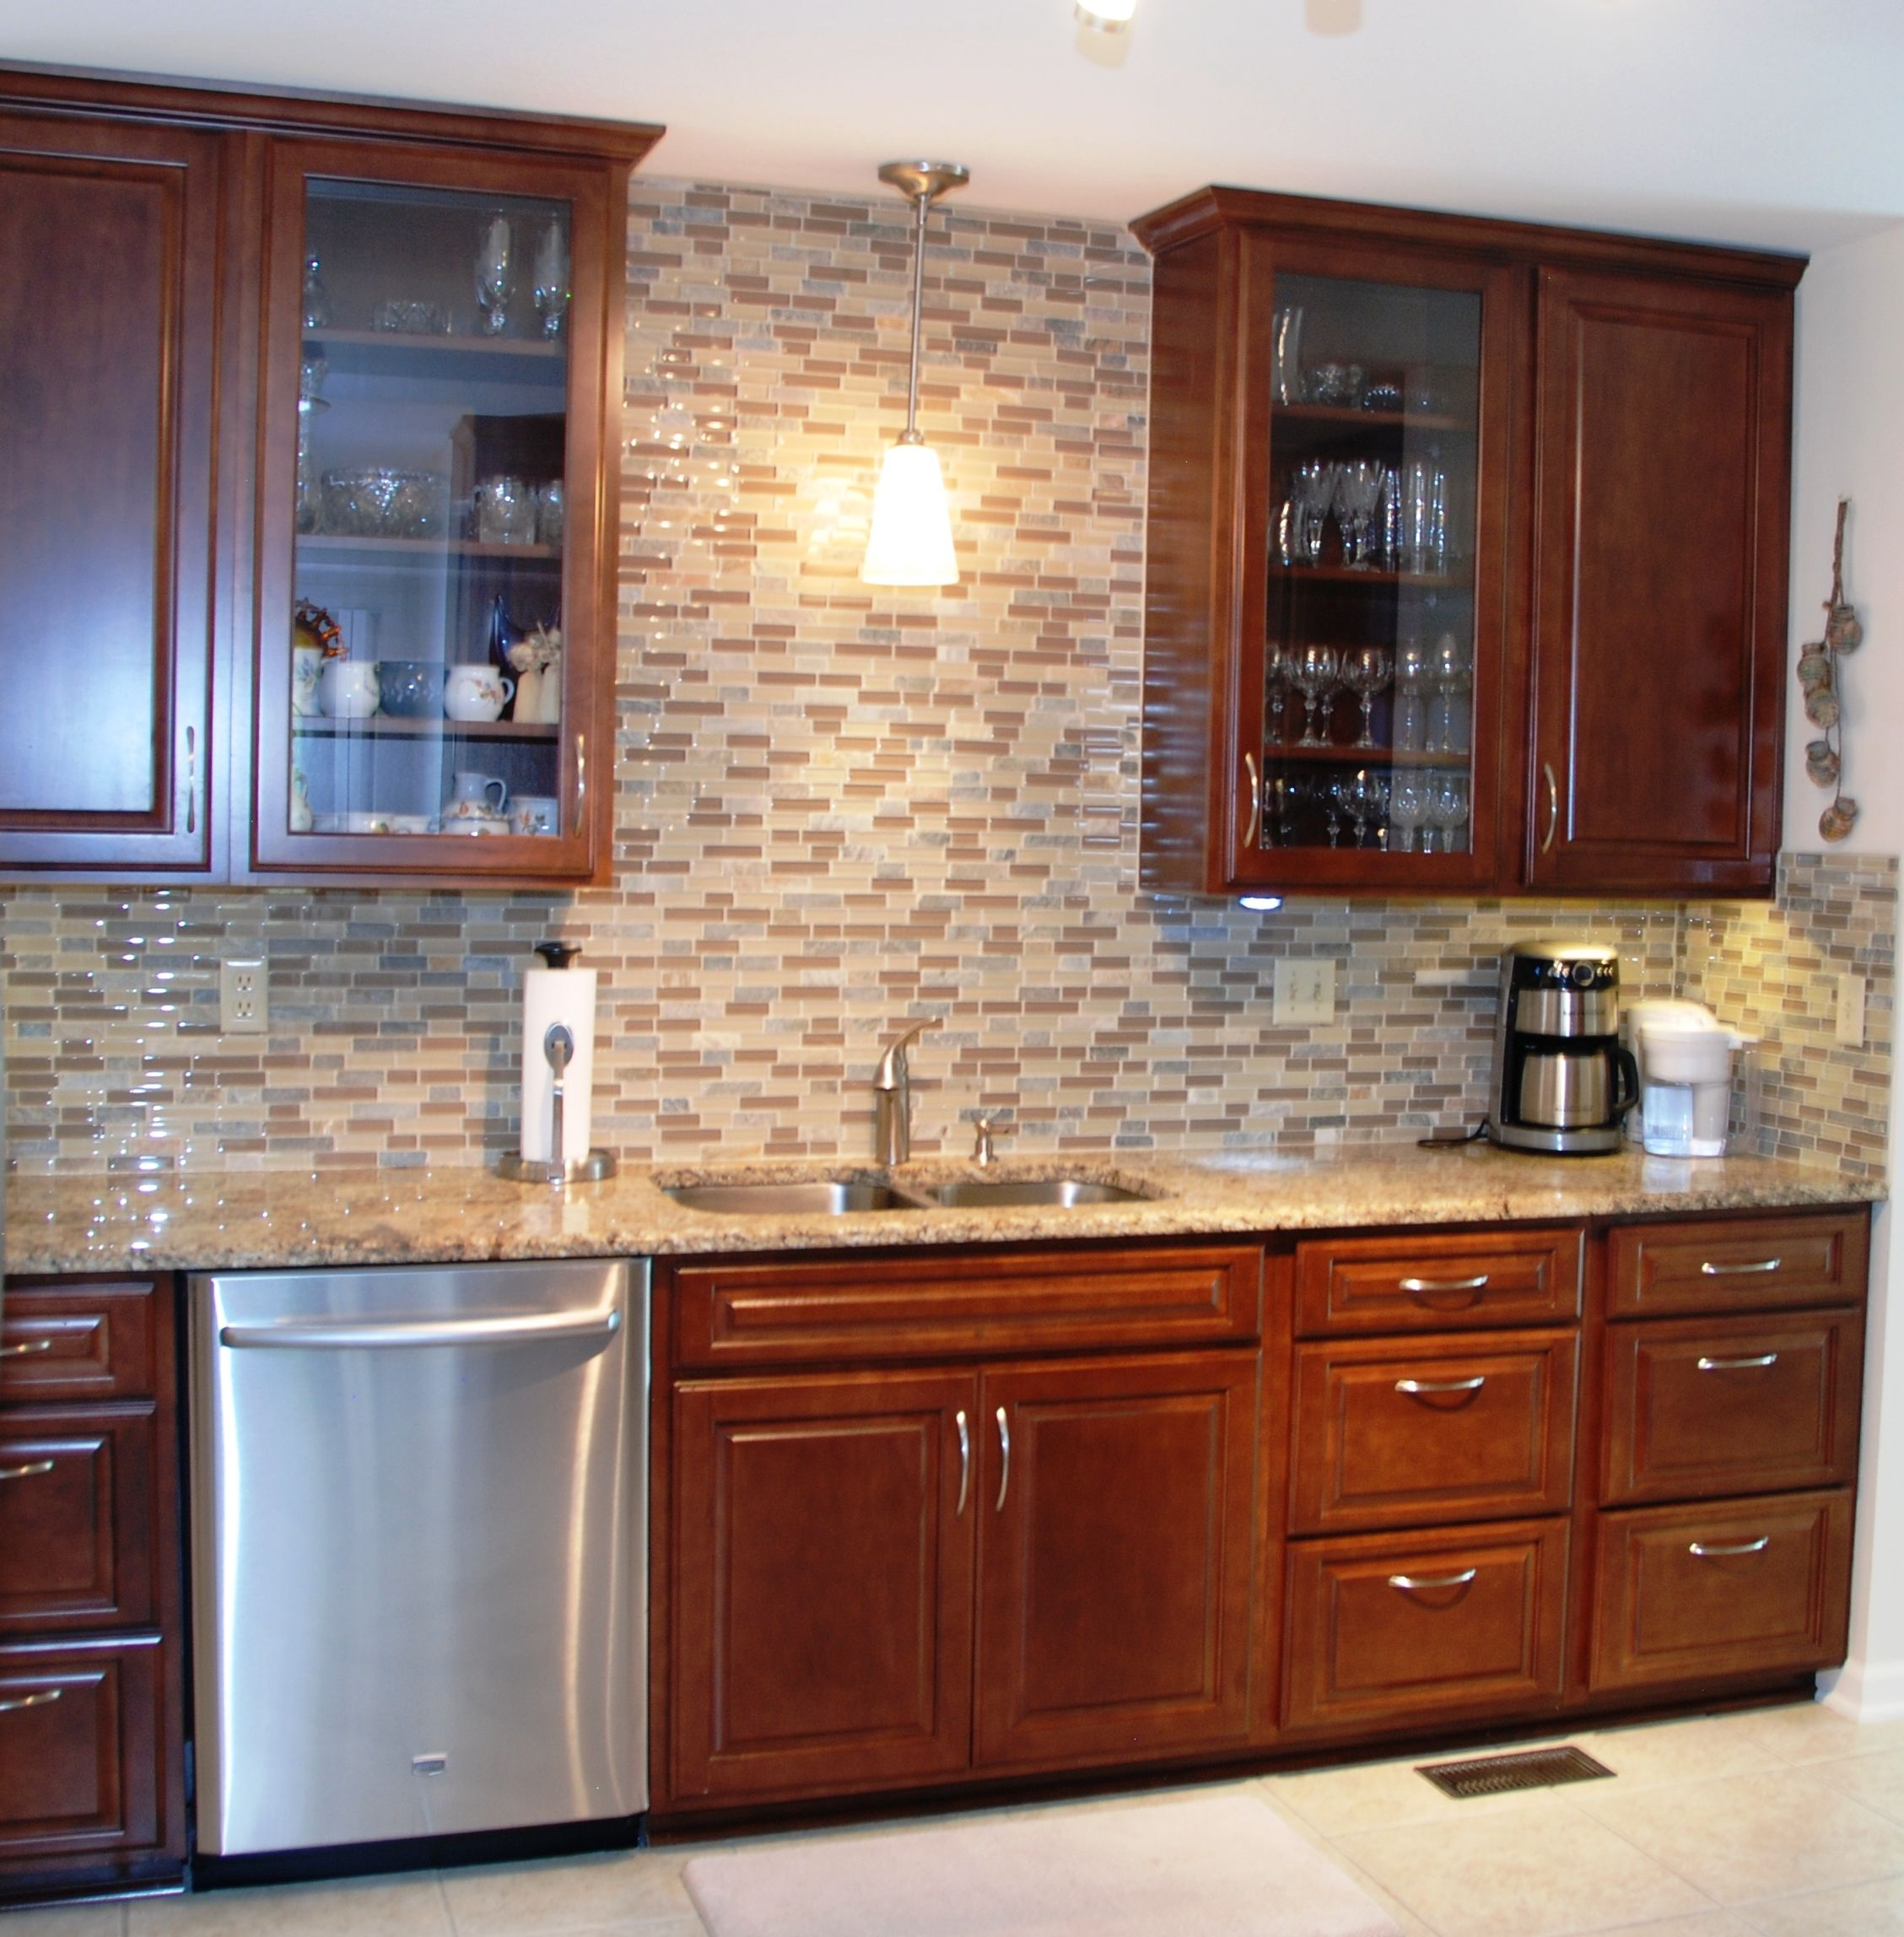 Kitchen Backsplash Maple Cabinets: Ceiling Height, Maple Raised Panel Cabinets, Glass Front